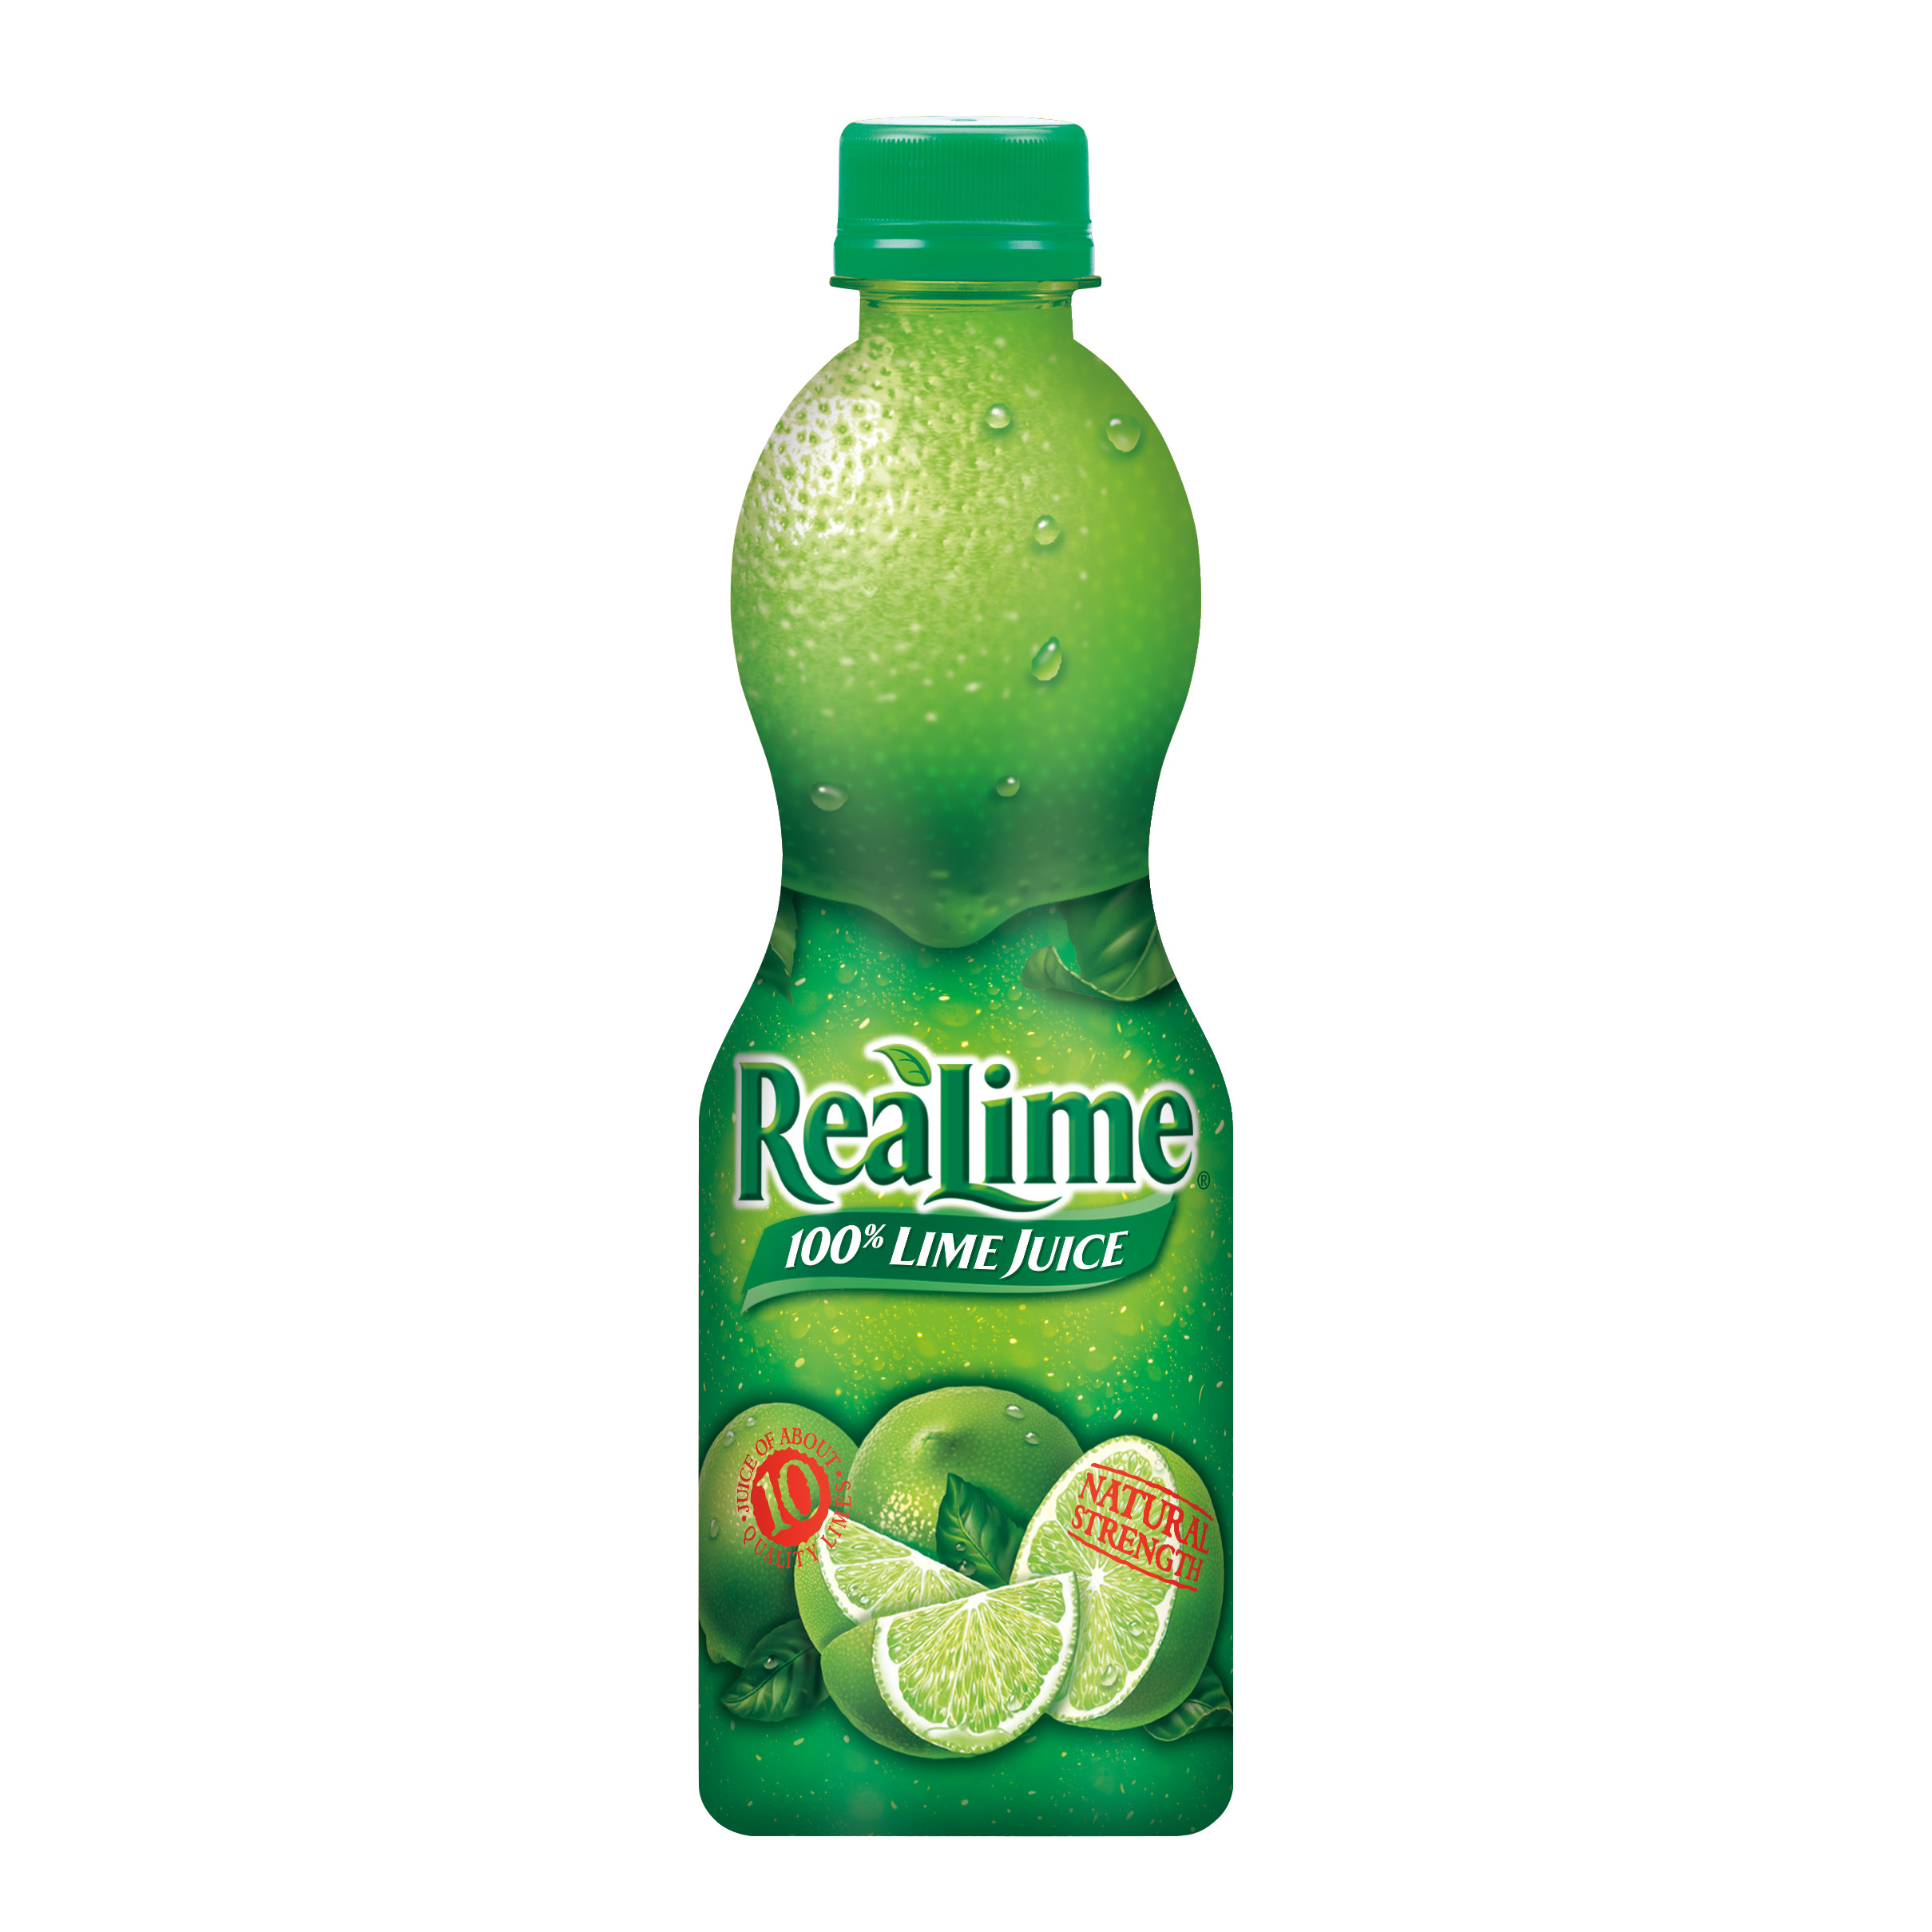 Realime 100% Lime Juice, 15 Fl Oz, 1 Count